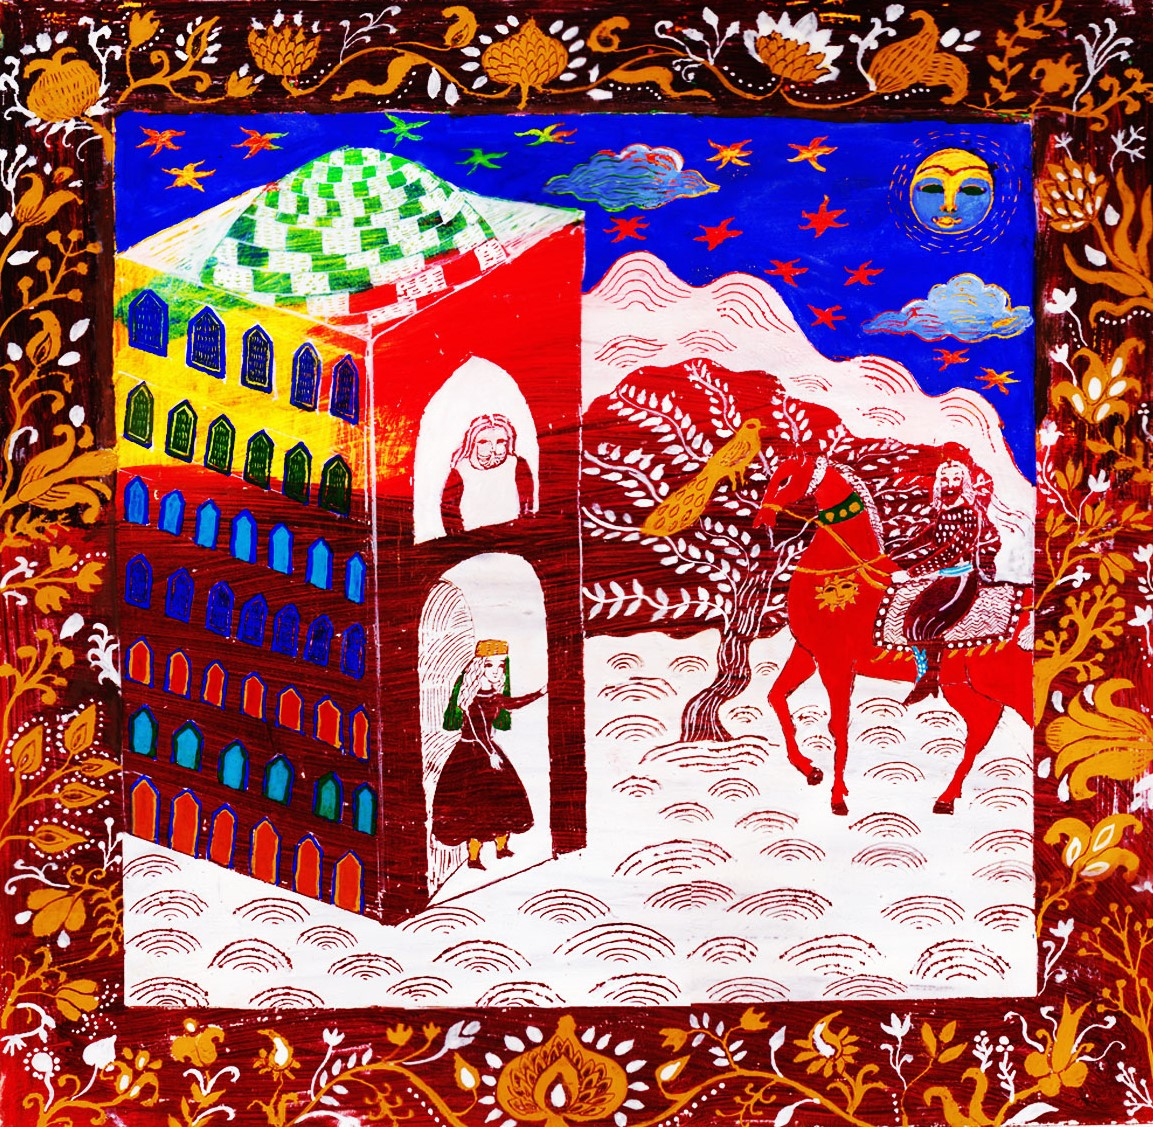 06- Shahnameh, Bahram at the door